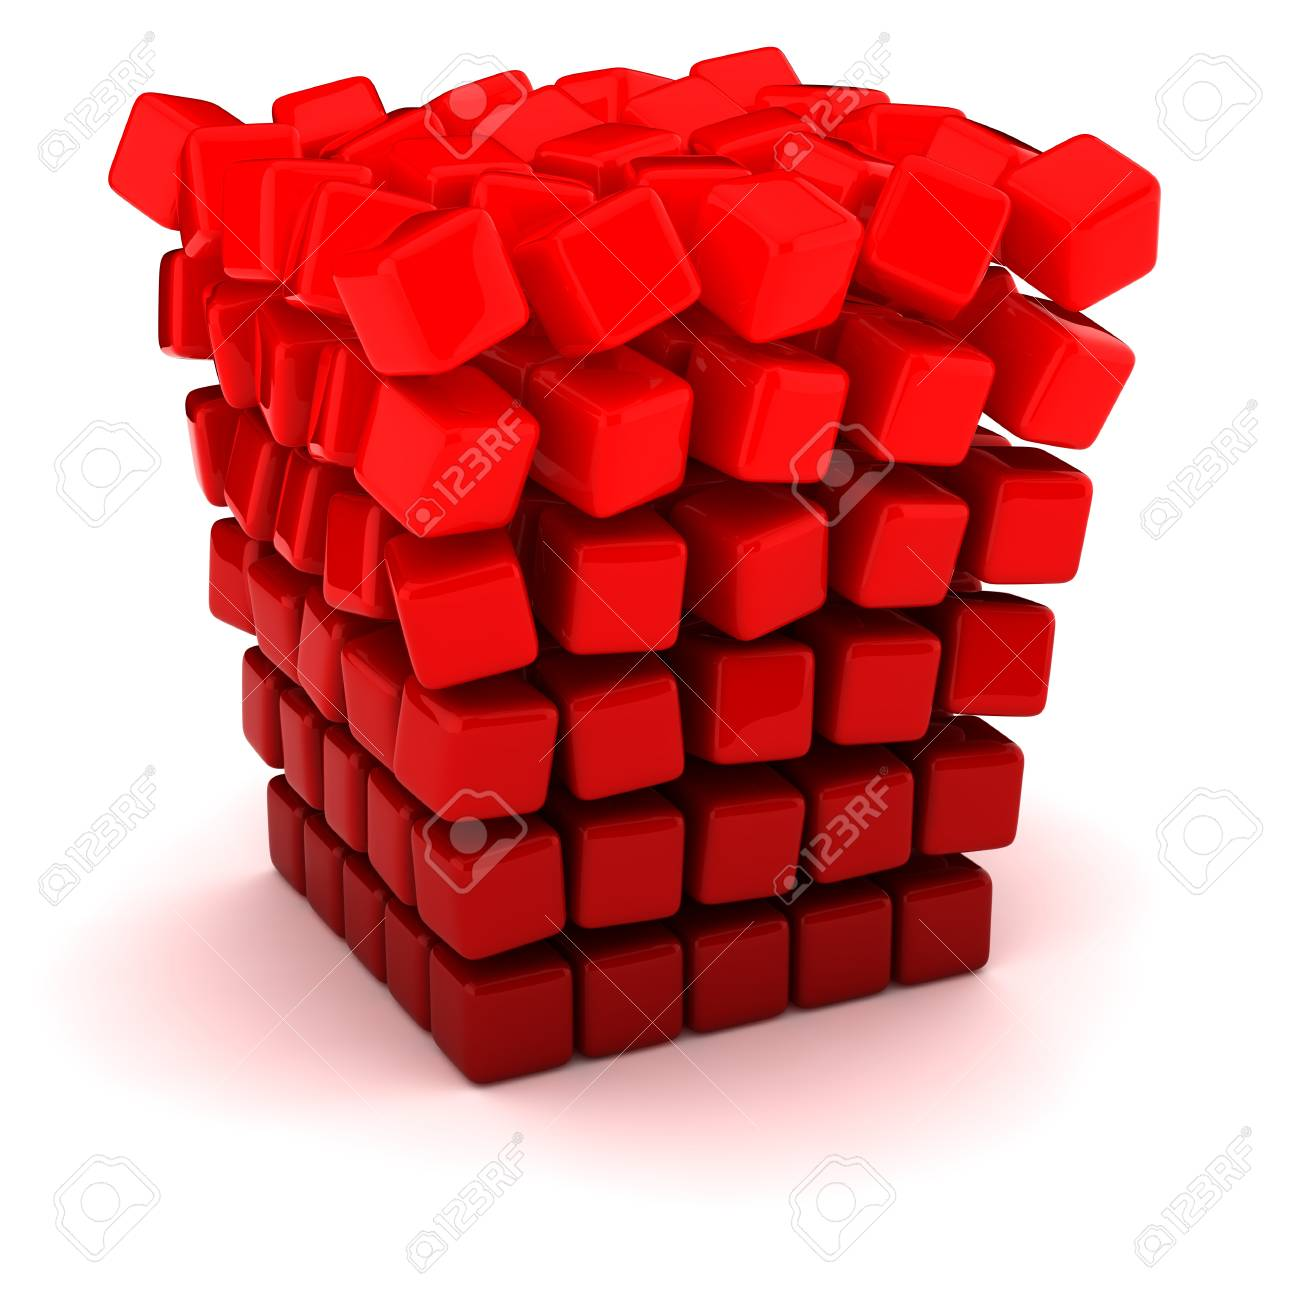 Falling apart into small figures cube Stock Photo - 12331732